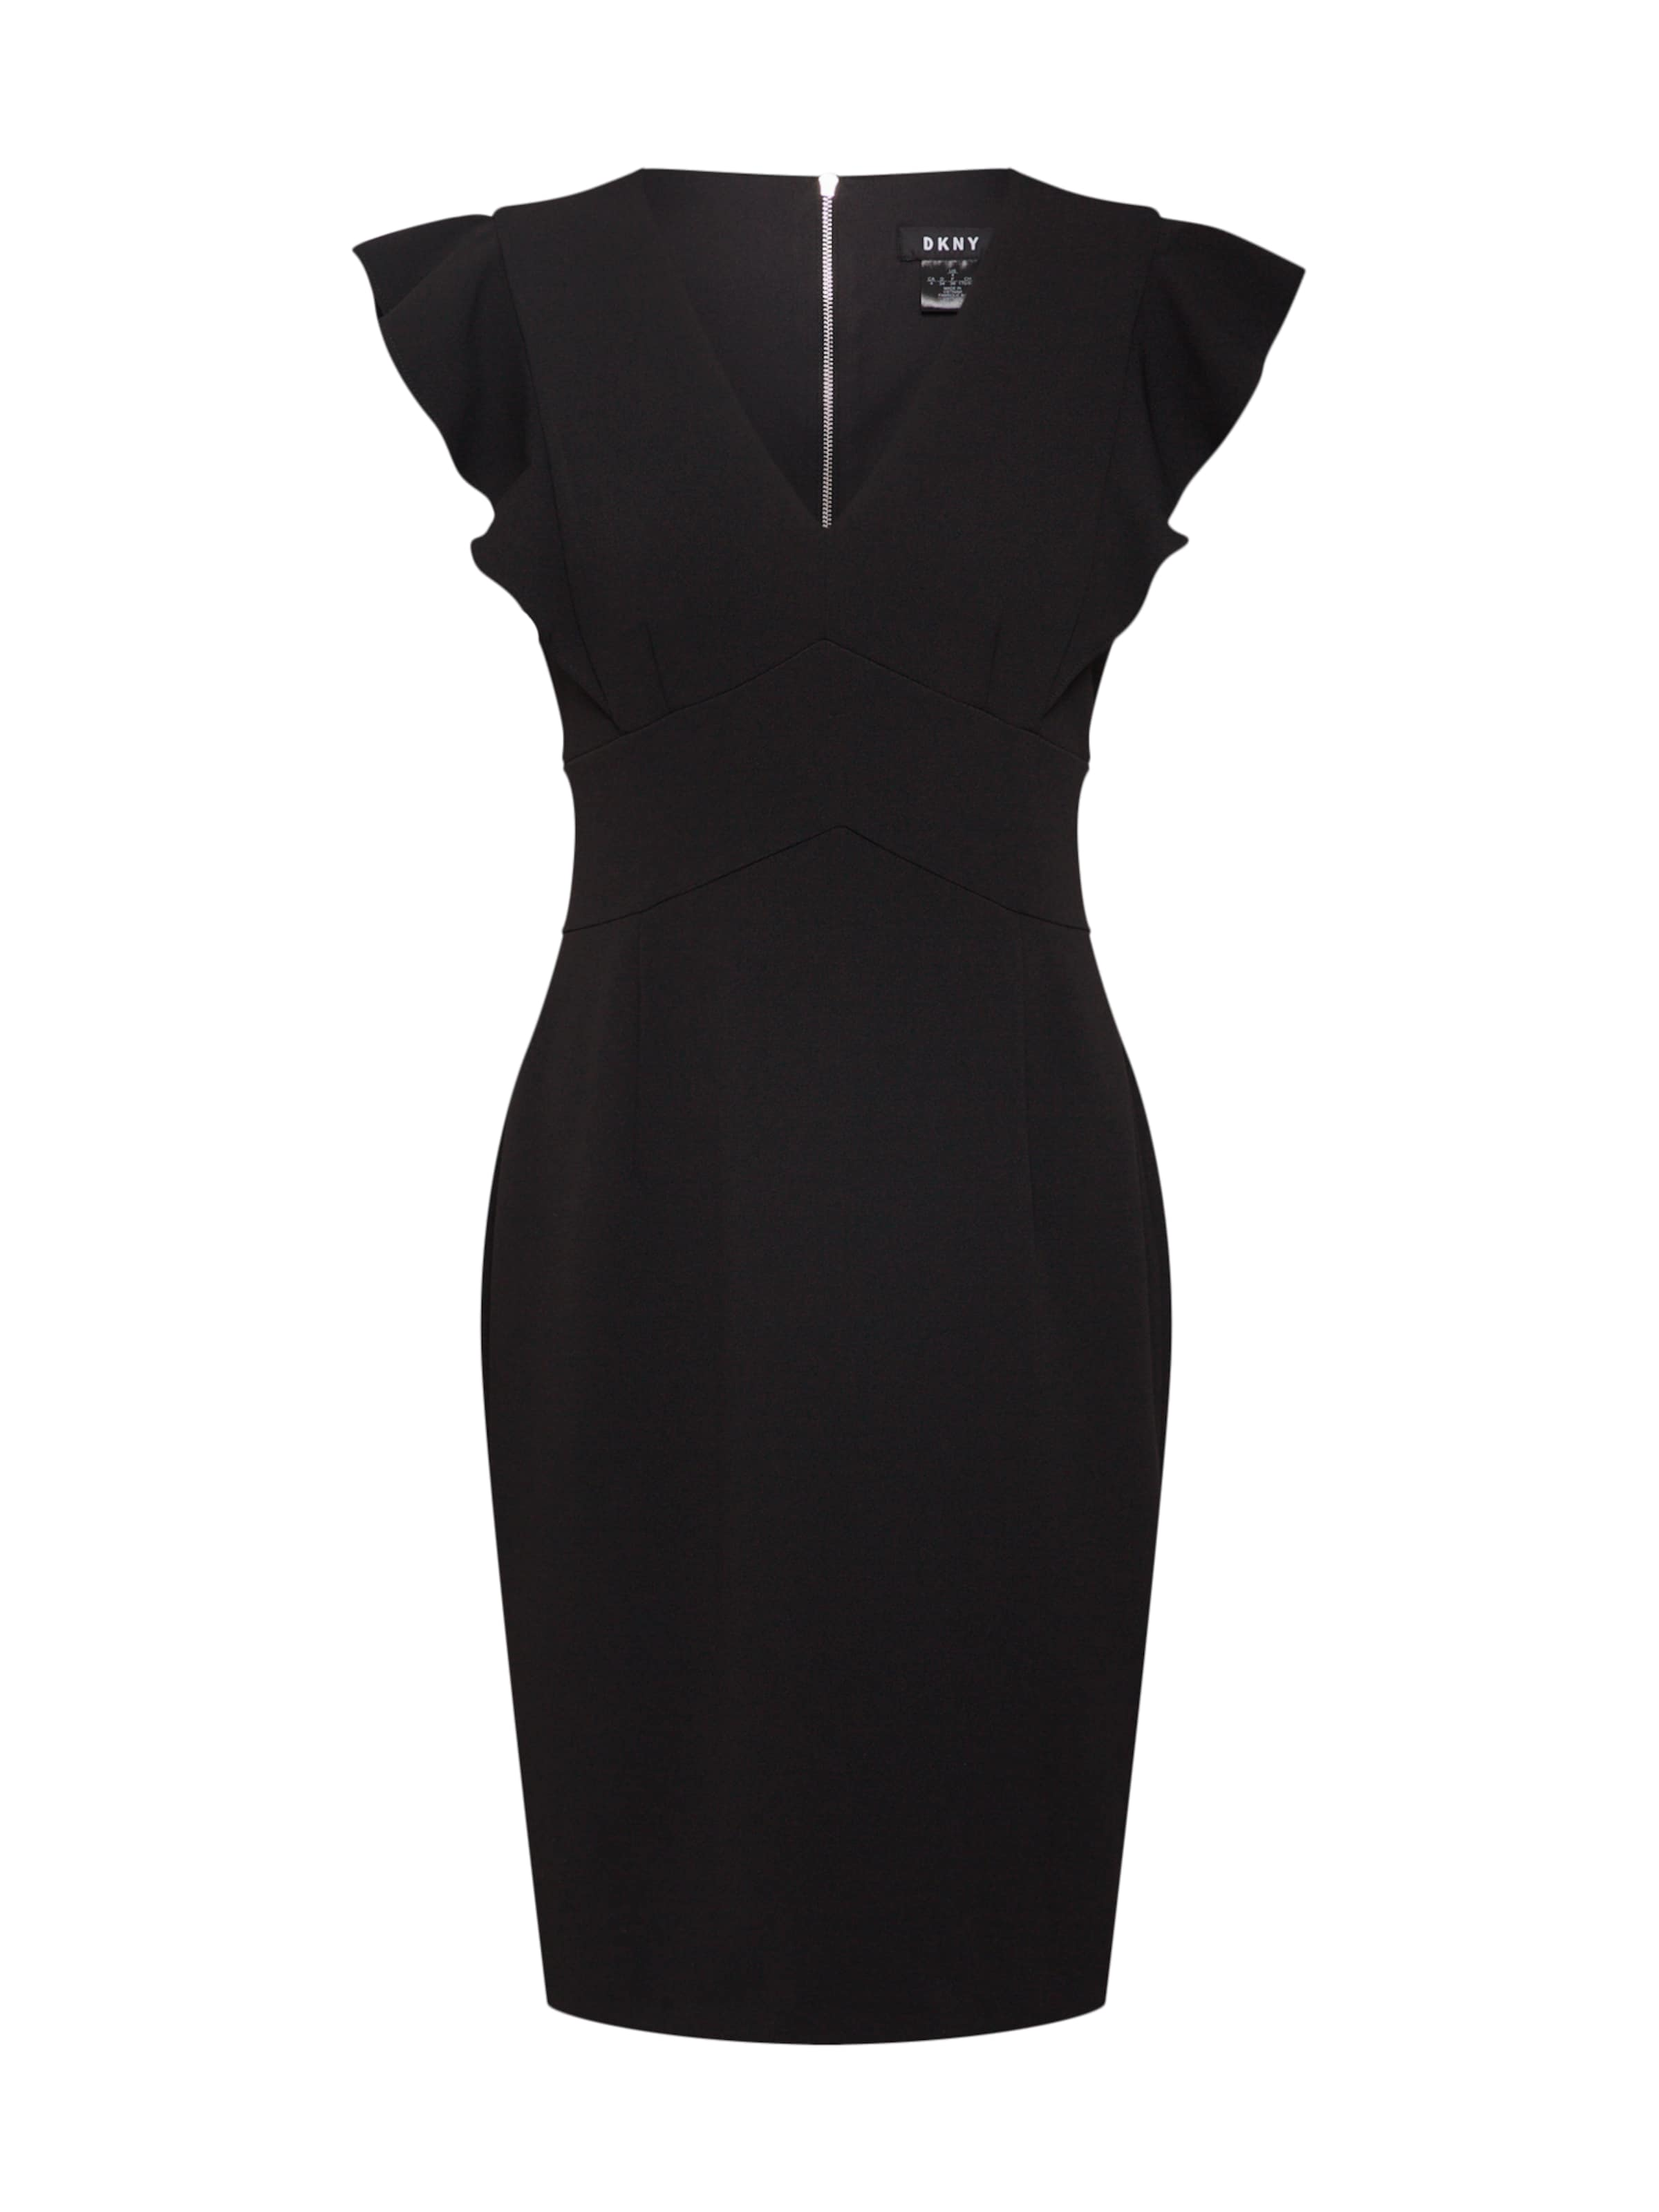 Ruffle Cap Sheath' neck Dkny Kleid In Sleeve 'v Schwarz LMSzjqUpVG